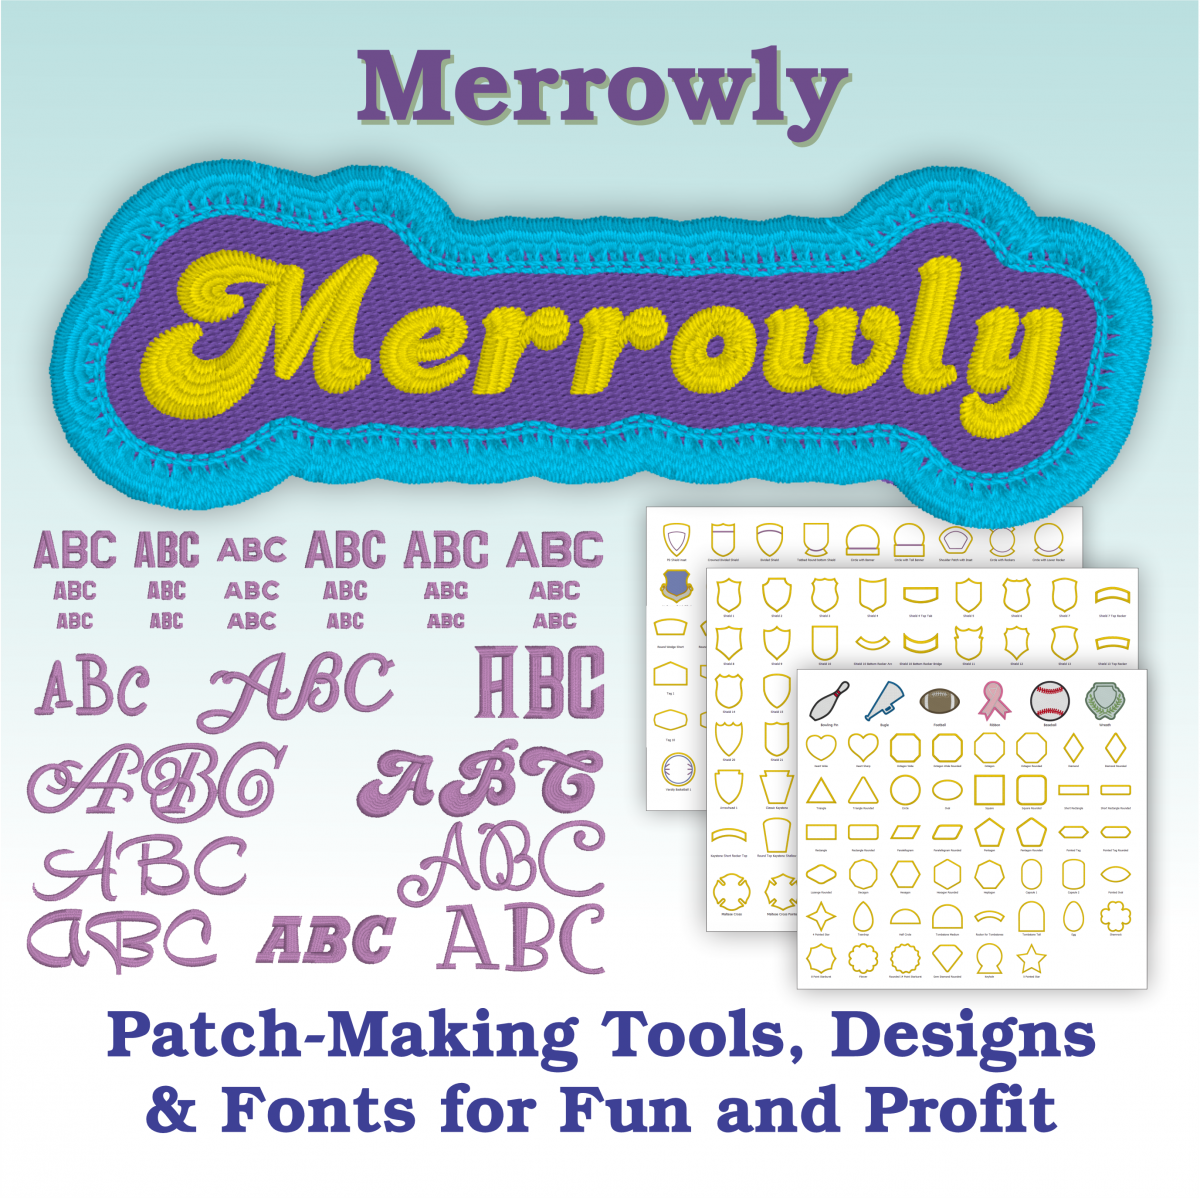 Cover for Embrilliance's Merrowly Automatic Patch Making Tool for Faux Merrow Edges for Machine Embroidery Designs including stock patch edge shapes and scalable fonts.